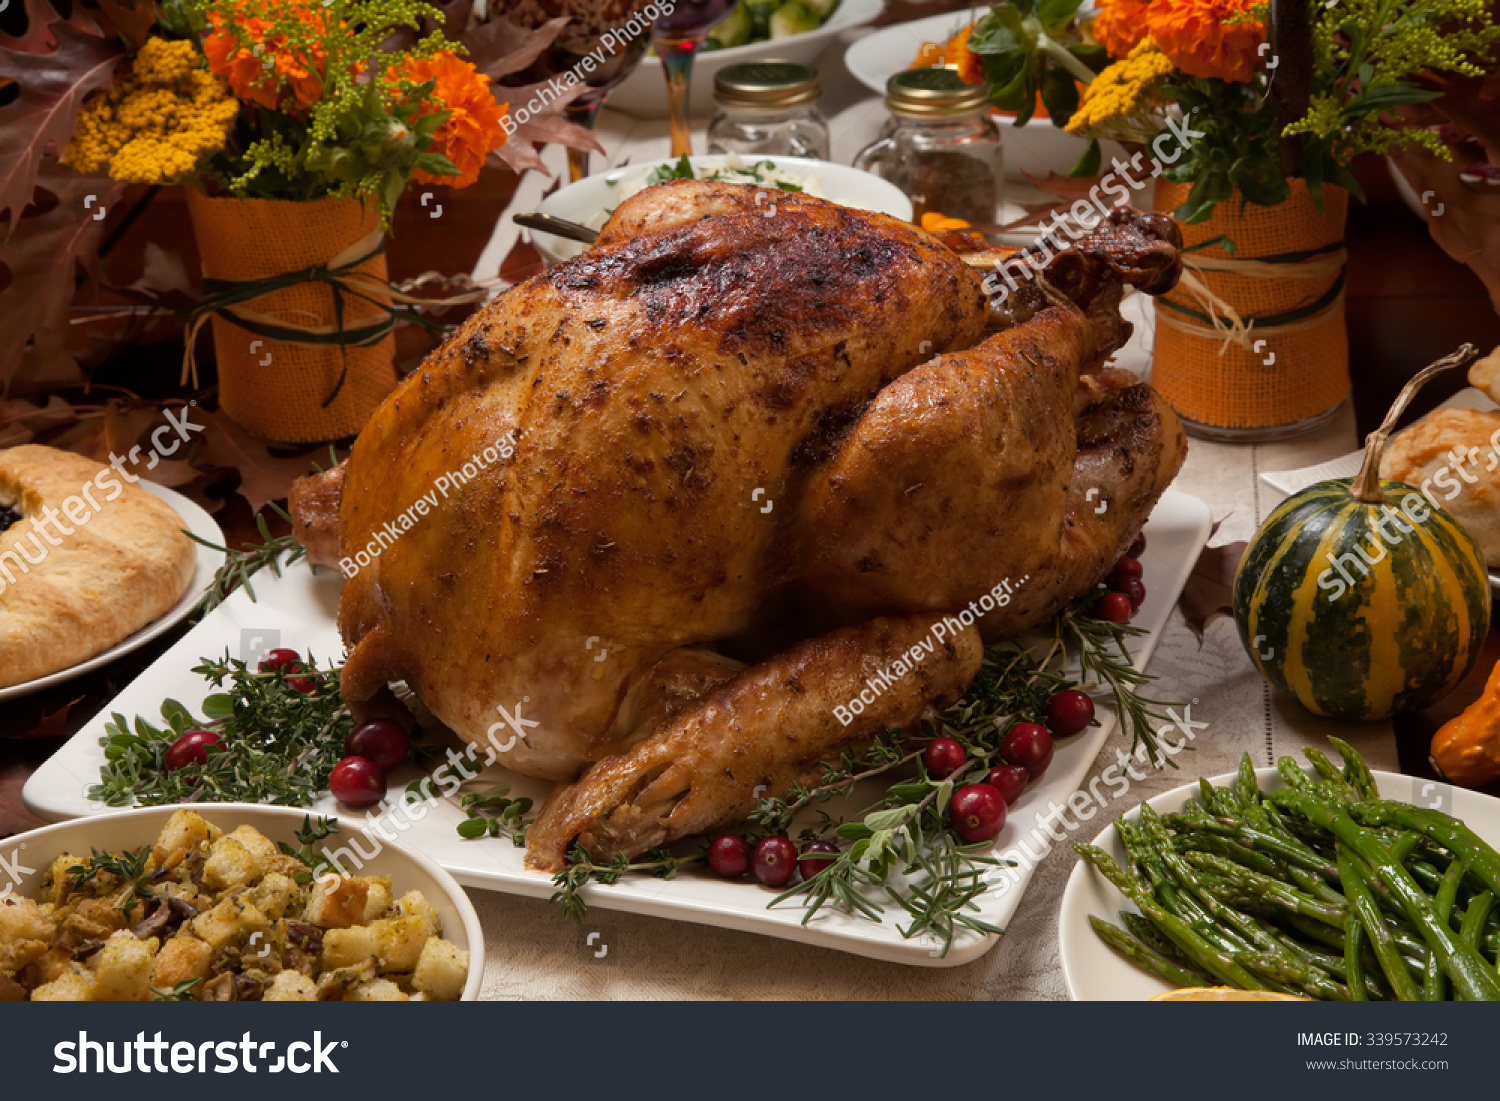 Roasted Turkey Garnished With Cranberries On A Rustic ...